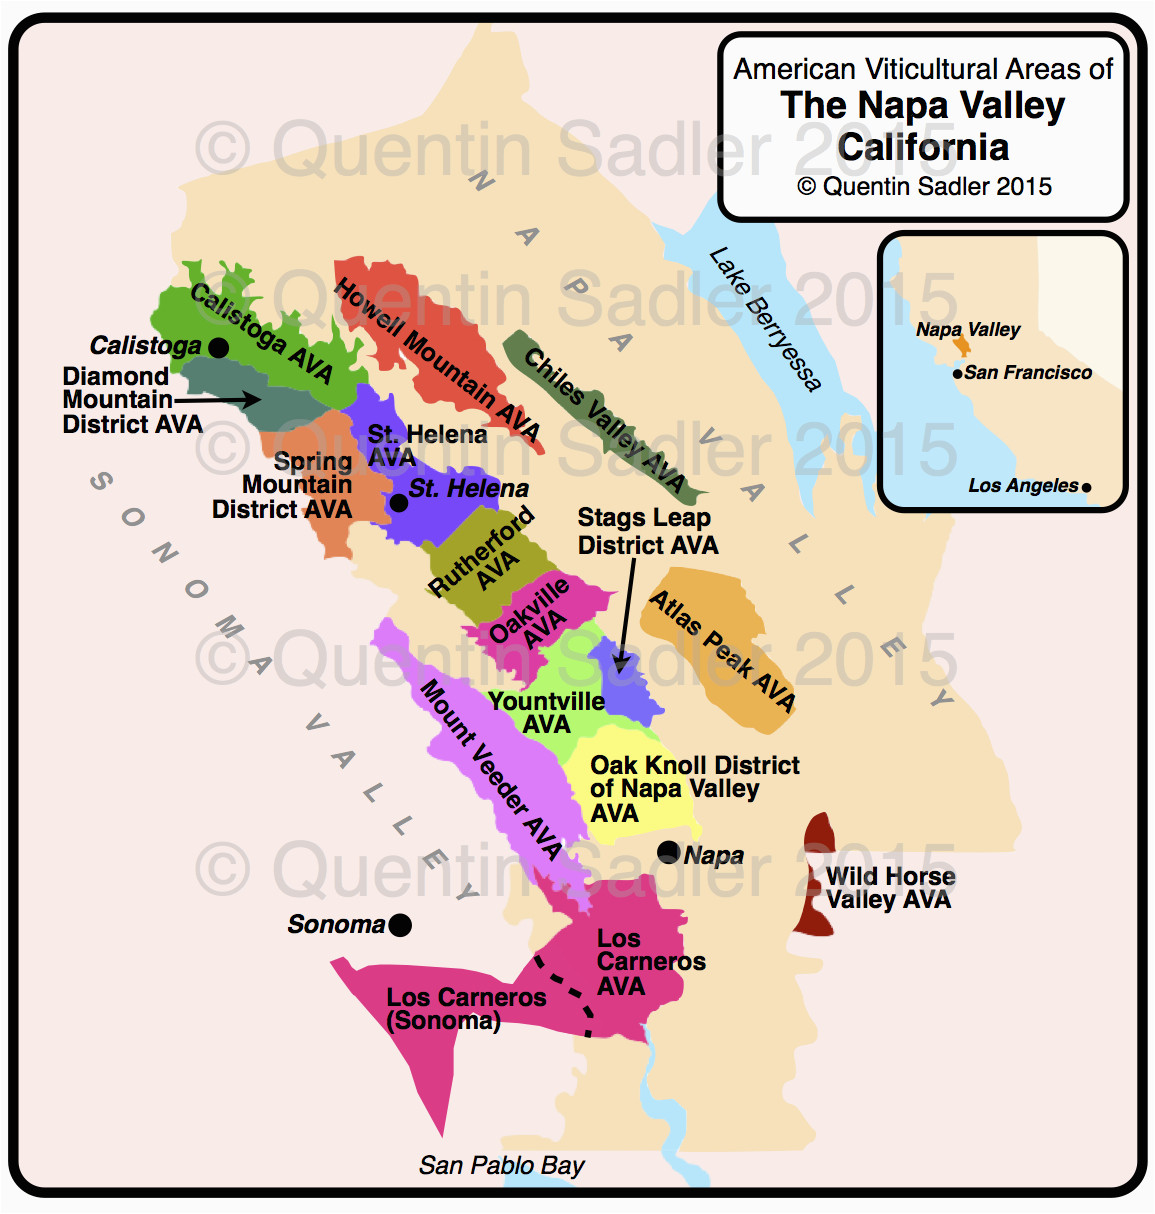 Wine Country In California Map Napa Valley Map Quentin ... on sierra foothills wine country map, sonoma wine country map, australia wine country map, yakima wine country map, santa barbara wine country map, mendocino wine country map, washington wine country map, long island wine country map, new mexico wine country map, los alamos wine country map, california wine country map, carneros wine country map, amador wine country map, napa wine country map, lake erie wine country map, lodi wine country map, temecula wine country map, california wine tours map, bordeaux wine country map, austin wine country map,